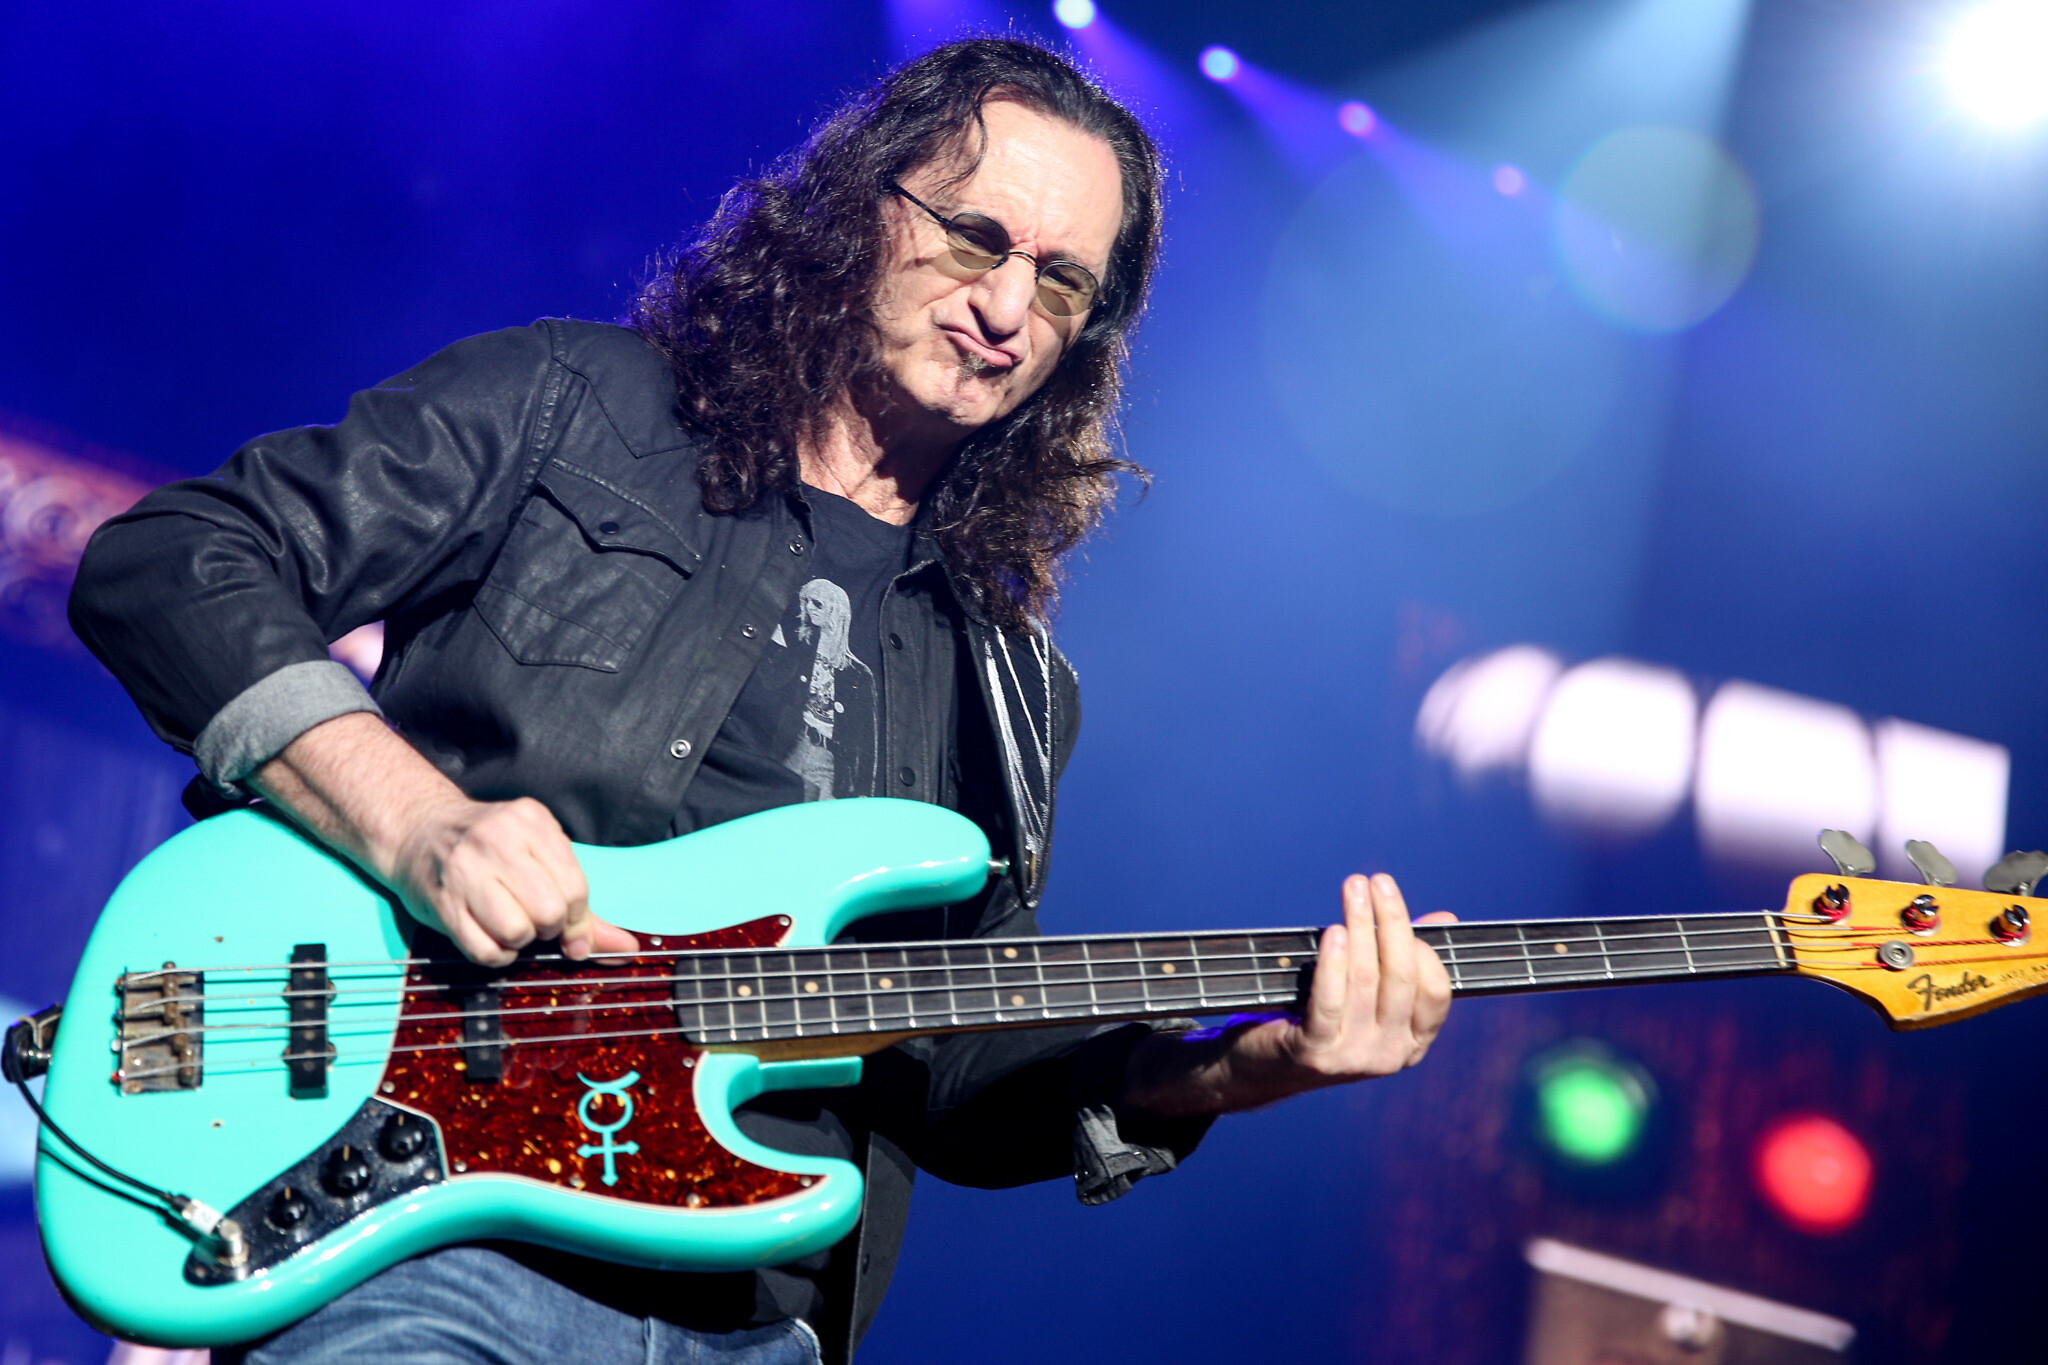 Locked down? Open up to... Rush's Jewish frontman Geddy Lee | The Times of Israel